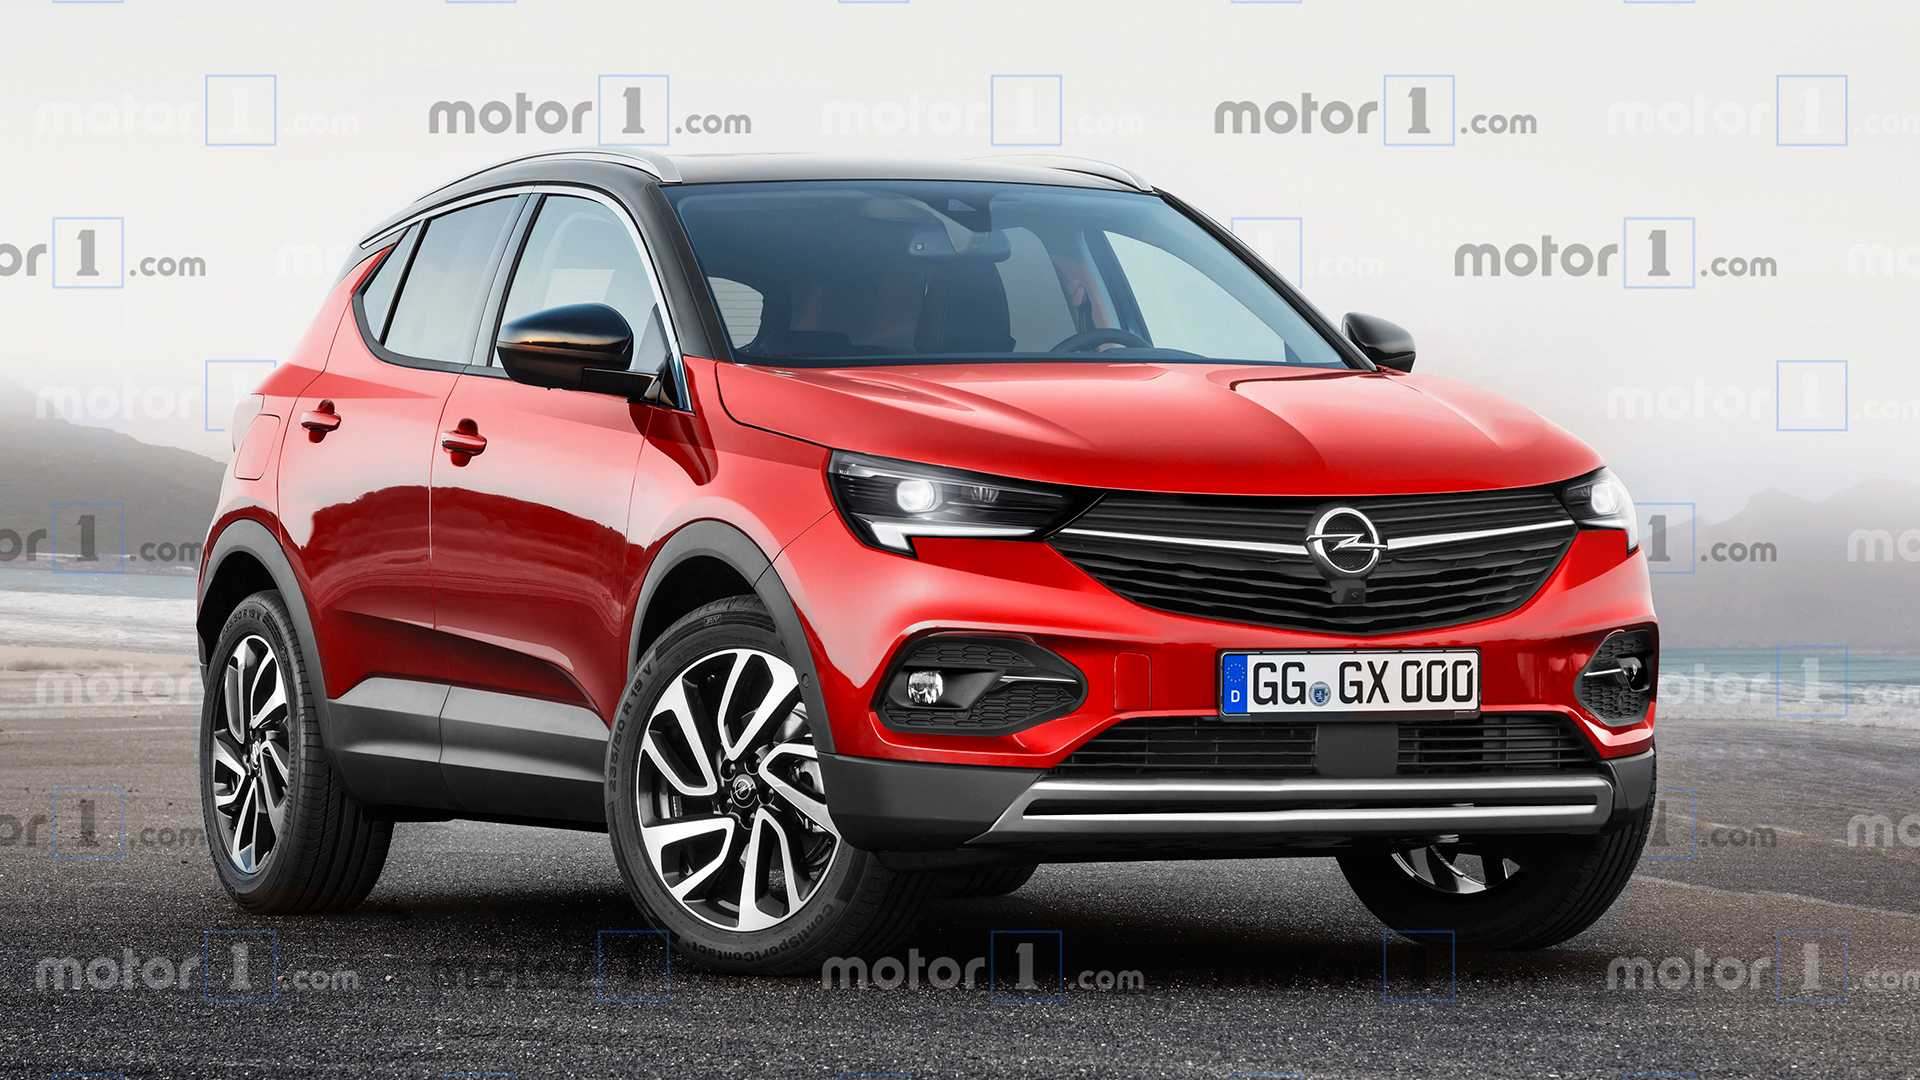 85 All New Opel Bis 2020 Ratings